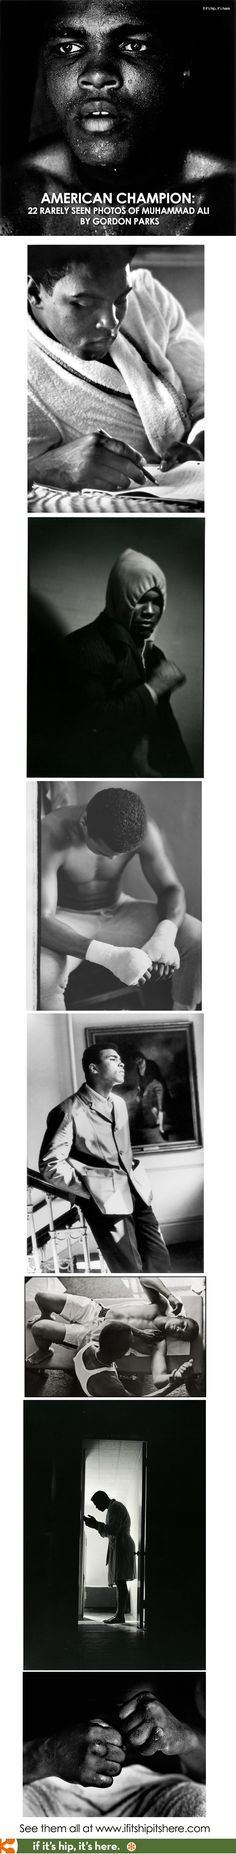 American Champion: 22 Never published photos of Muhammad Ali by Gordon Parks at http://www.ifitshipitshere.com/gordon-parks-muhammad-ali-photos/